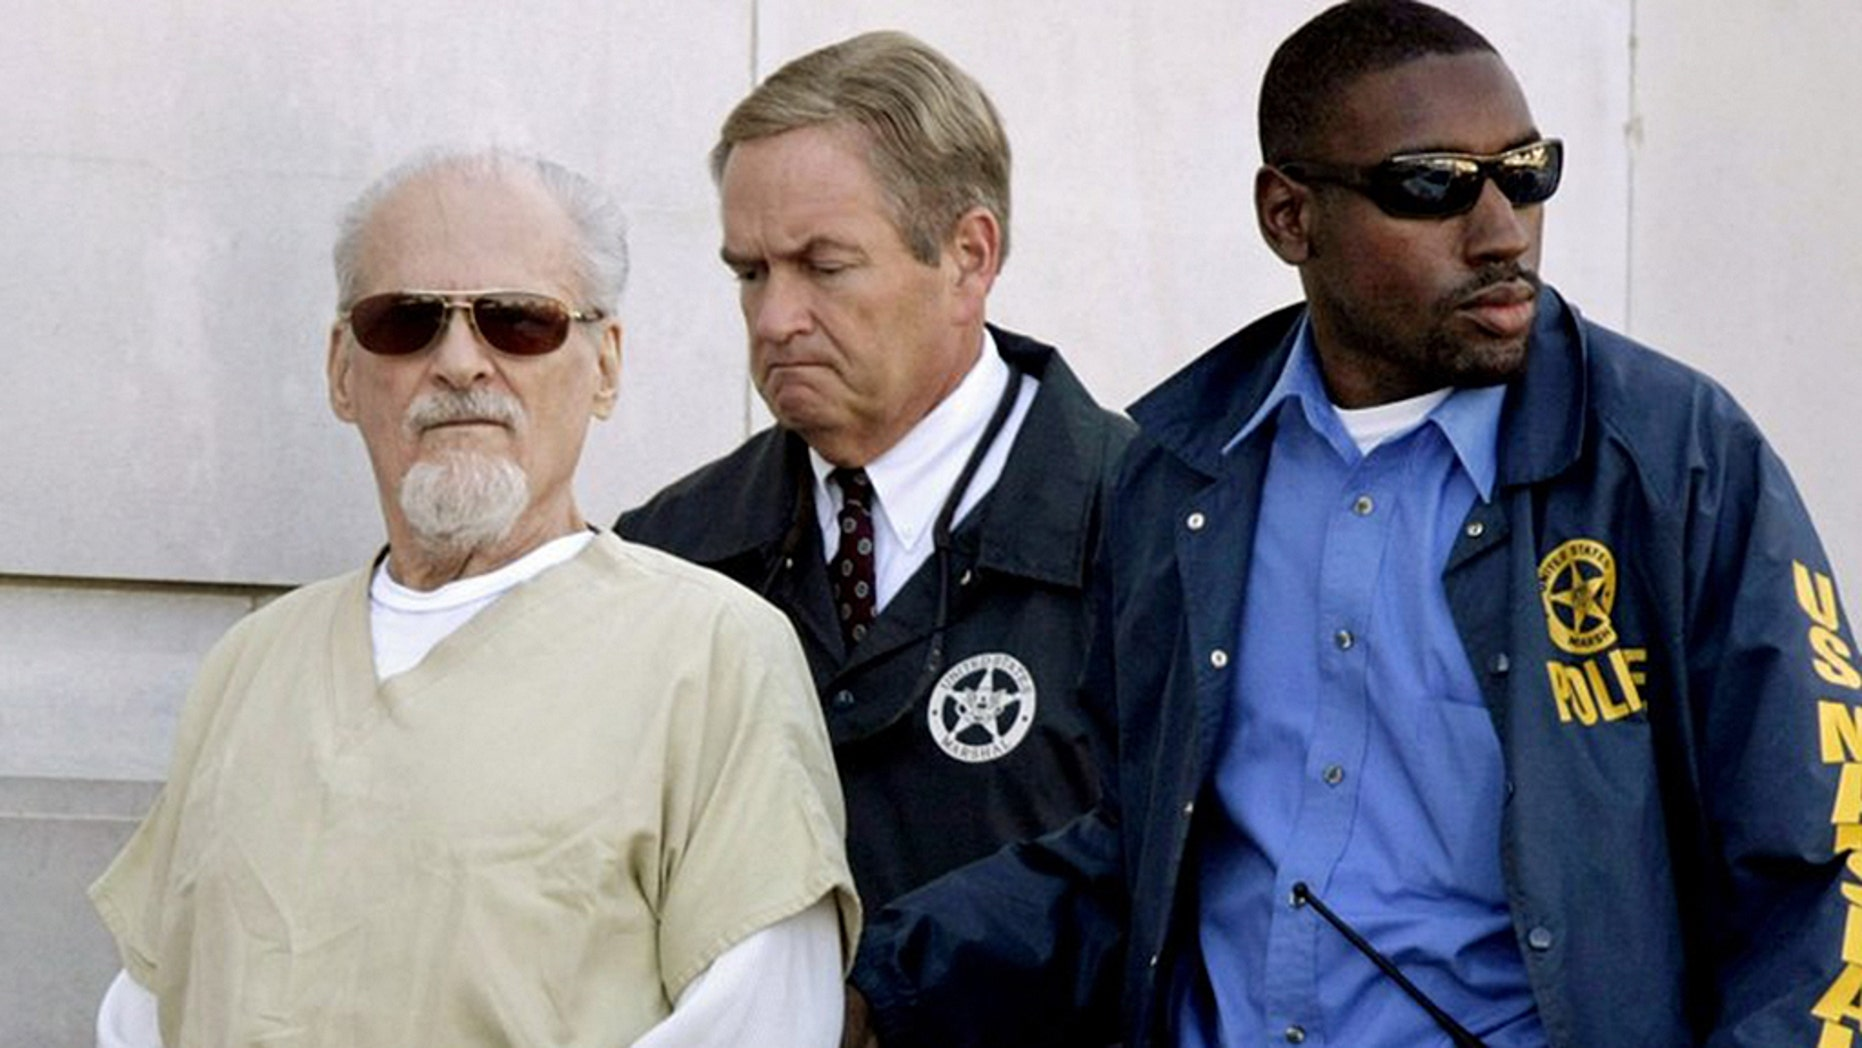 "Tony Alamo, left, is escorted from the Federal Court House in Texarkana, Ark., on July 23, 2009. His infamous case is the subject of a new special titled ""People Magazine Investigates: Cults"" on Investigation Discovery."